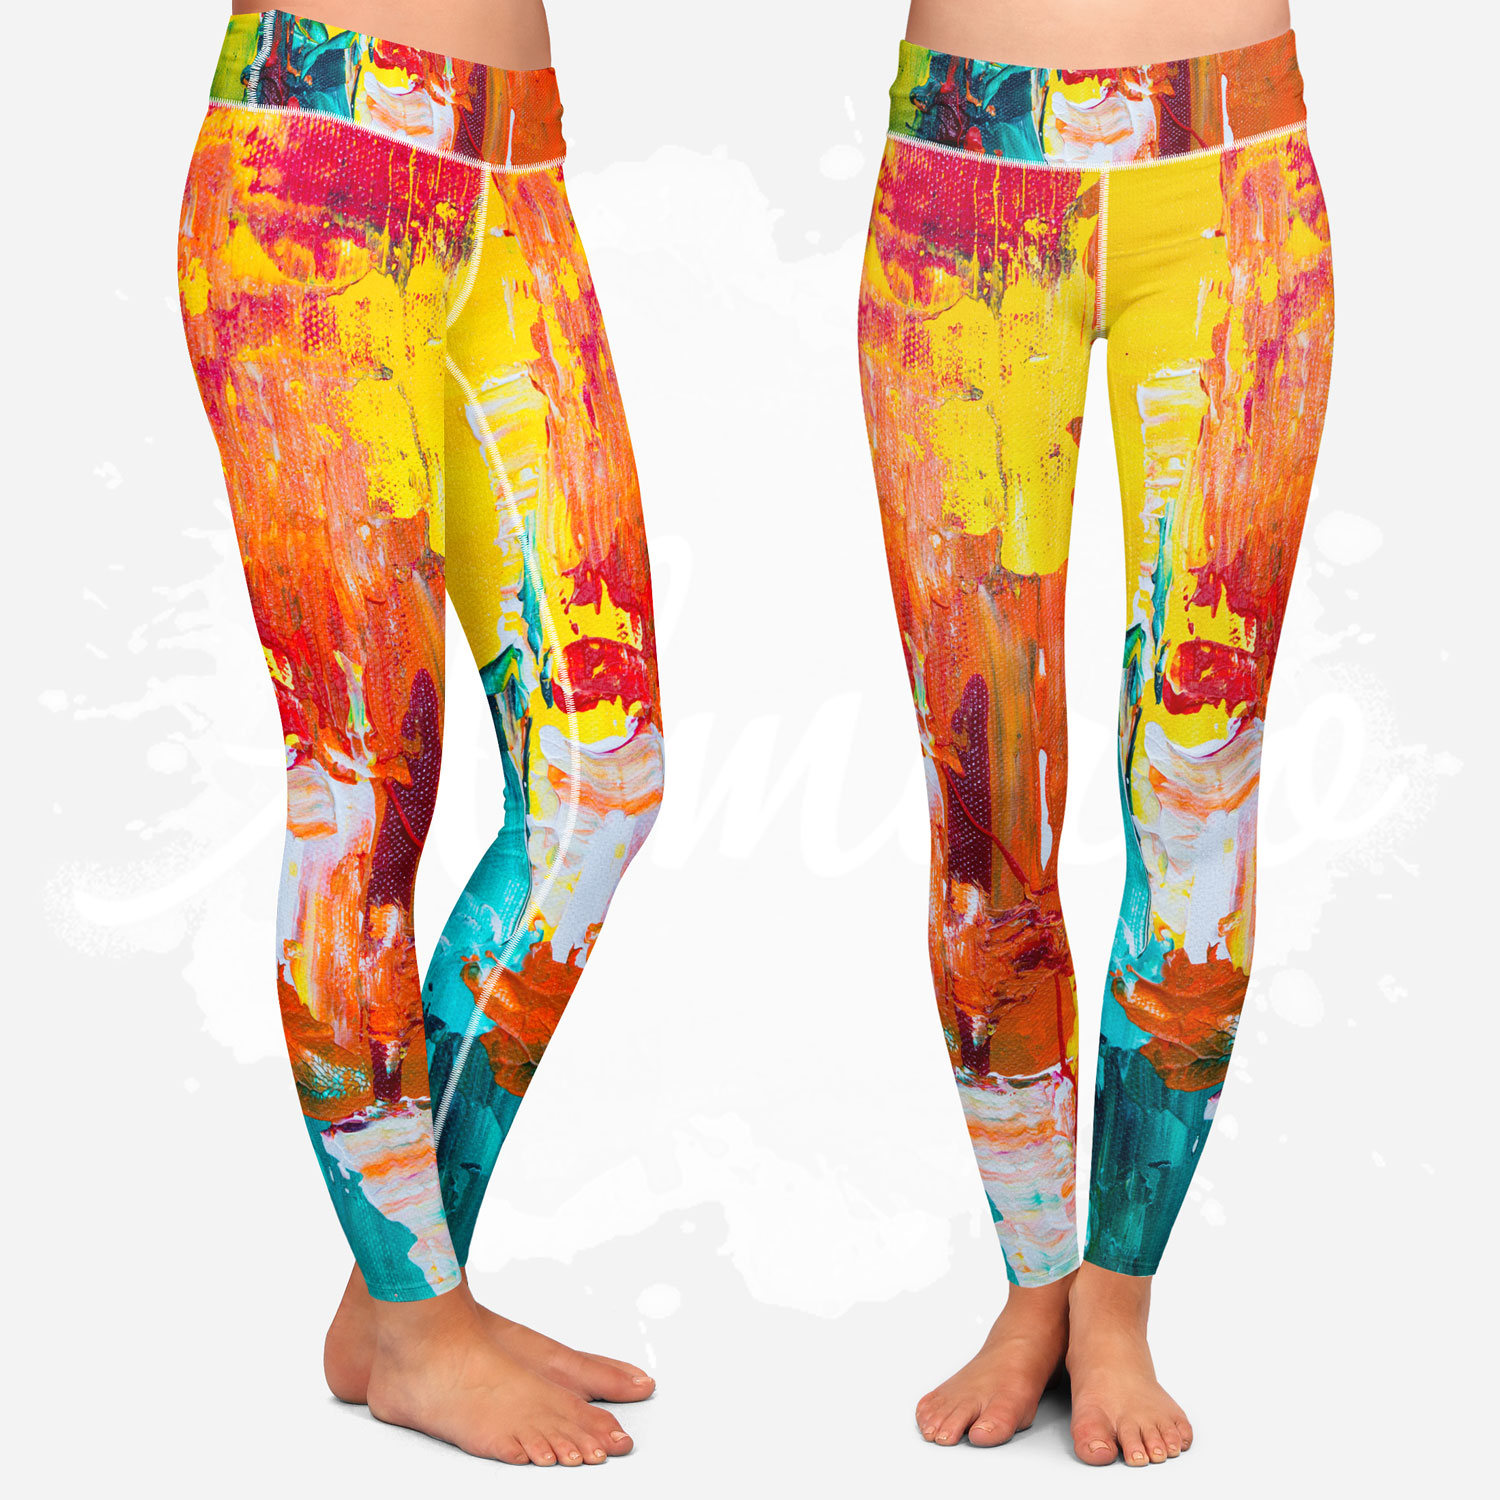 Leggings for women, Almirio, colorful, yoga style